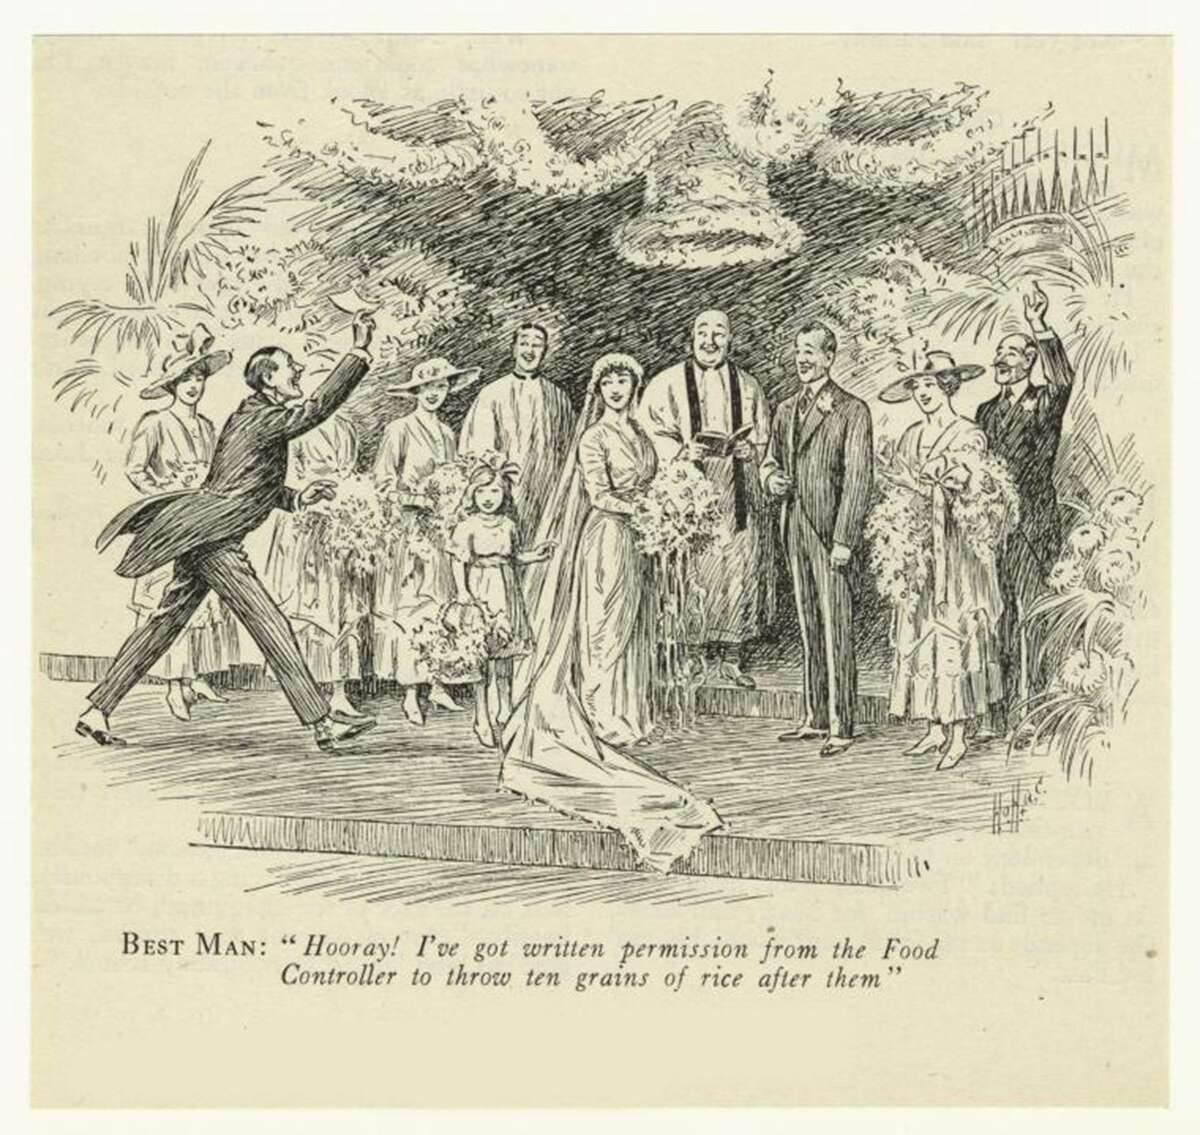 Food historian Sarah Wassberg will discuss food and its relation to wedding traditions from 2:30-4:30 p.m., Sunday, June 11, at the Lockwood-Mathews Mansion Museum. In her talk, she will illustrate how American weddings went from families in the parlor to today's lavish dinners with dancing.